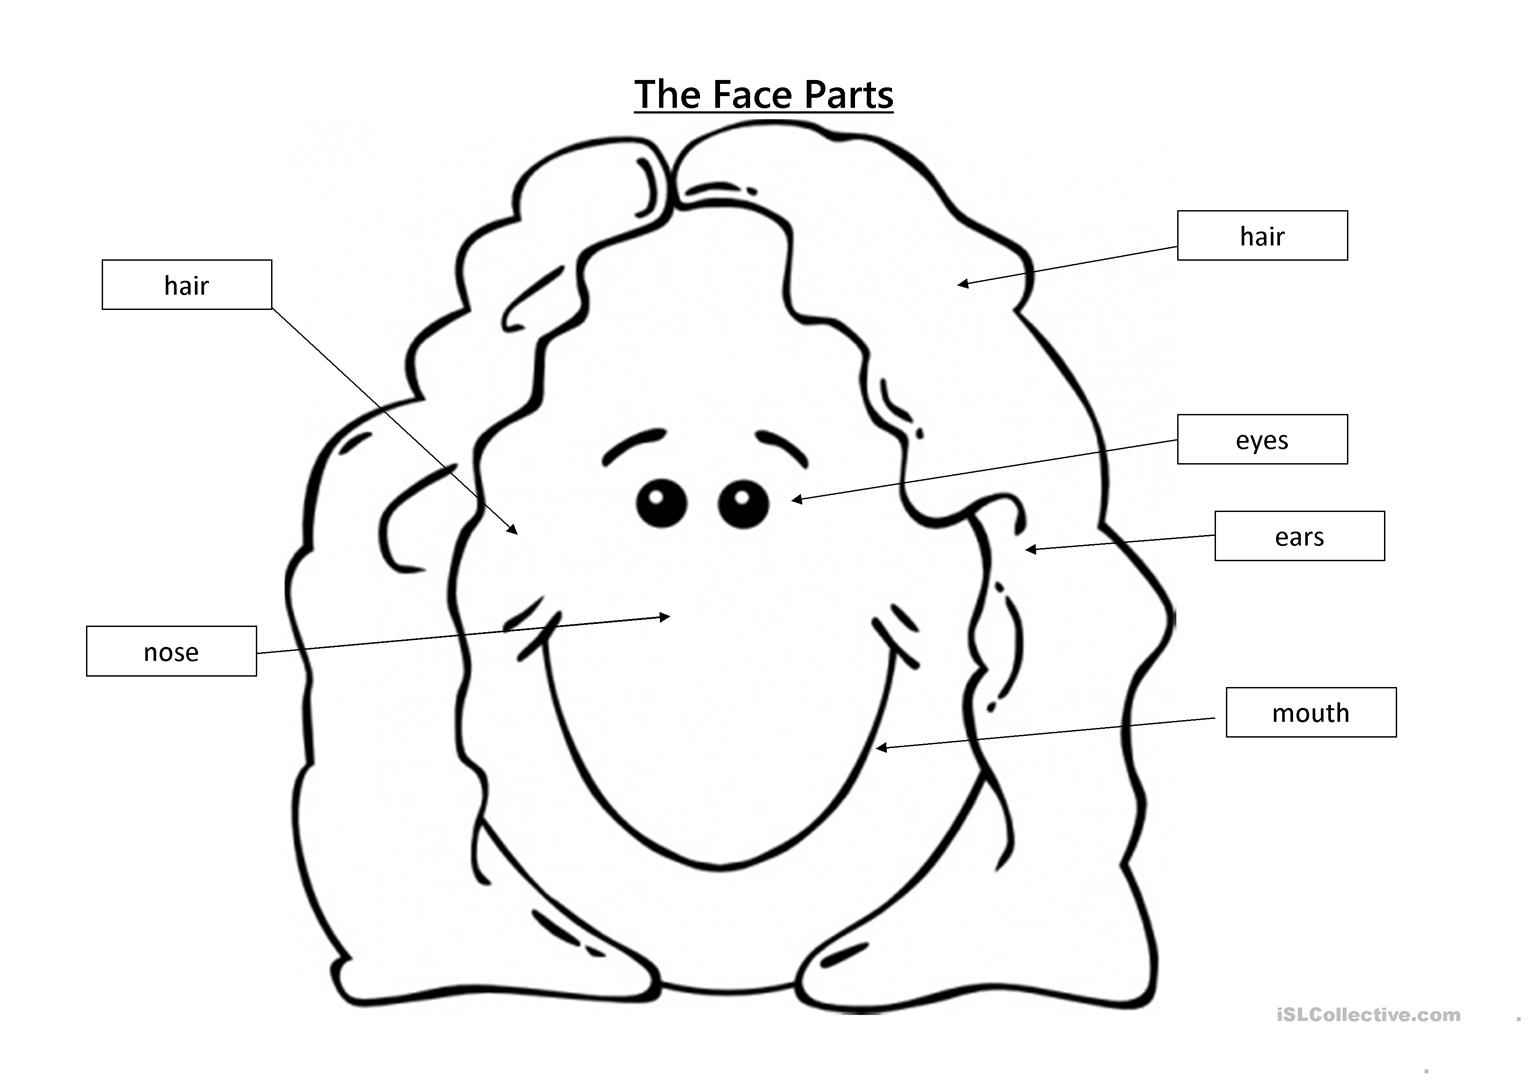 Face Parts Worksheet